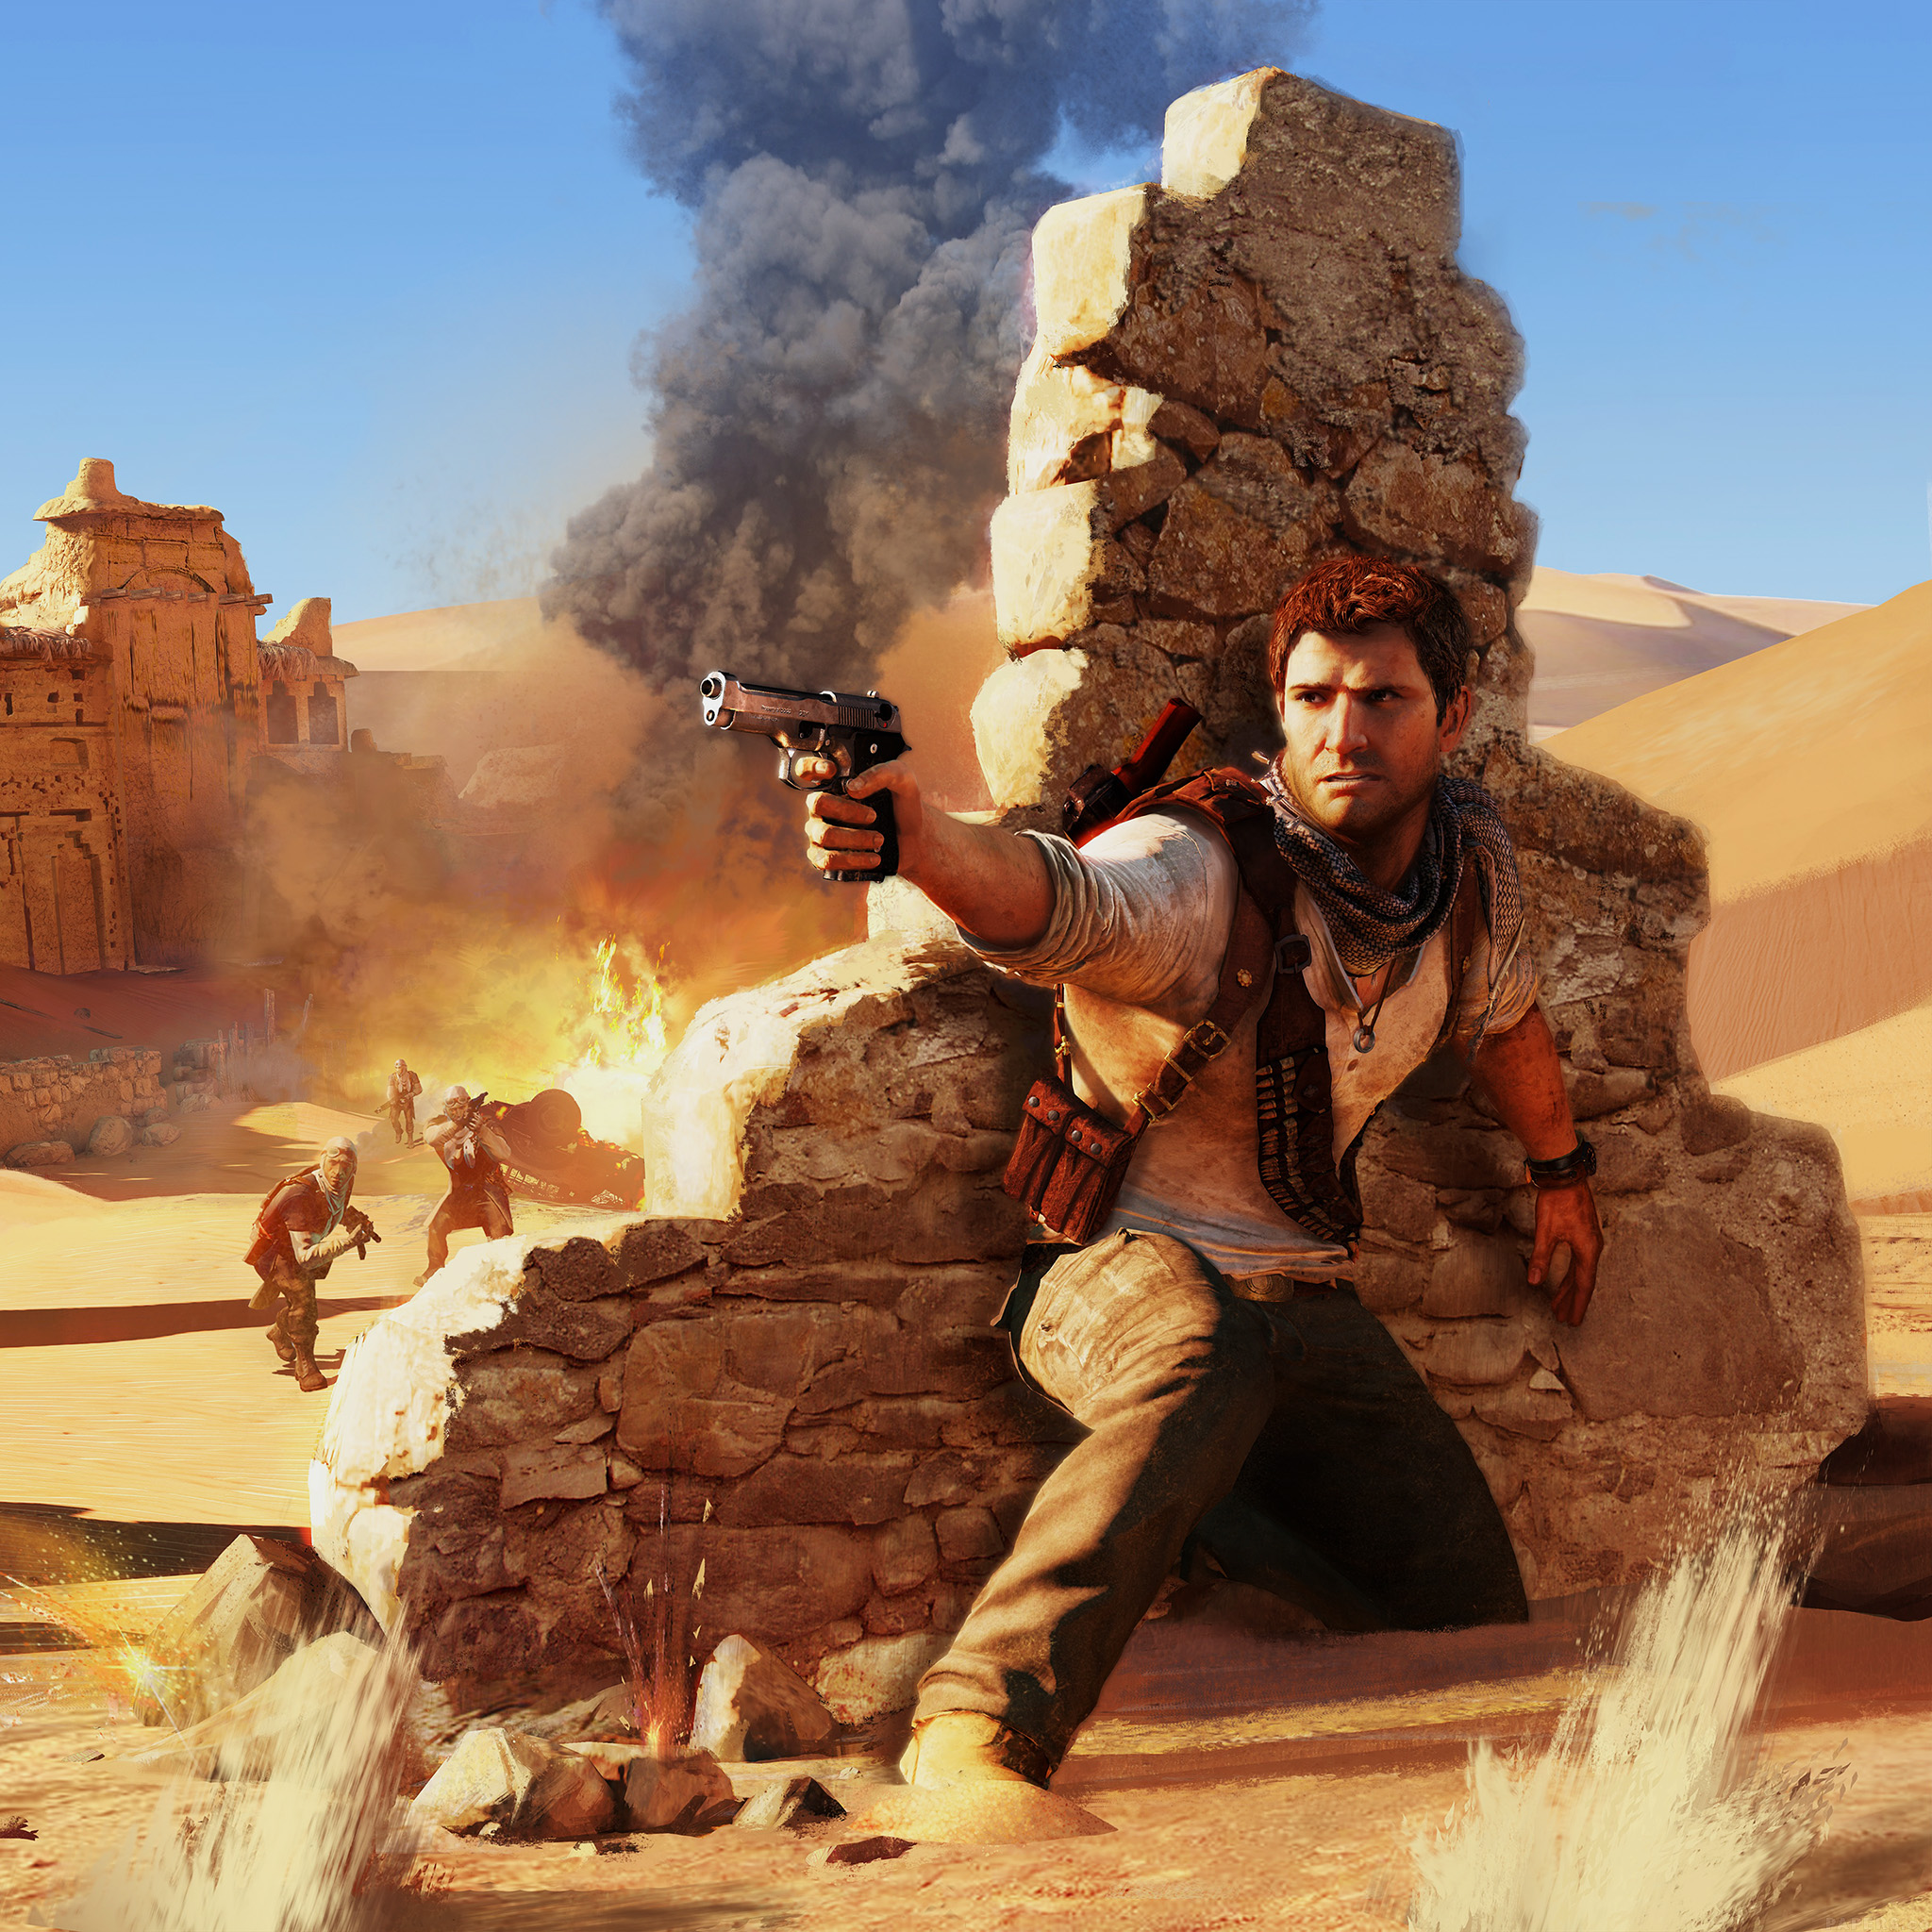 Uncharted Wallpaper: Ah09-drake-under-fire-uncharted-game - Parallax